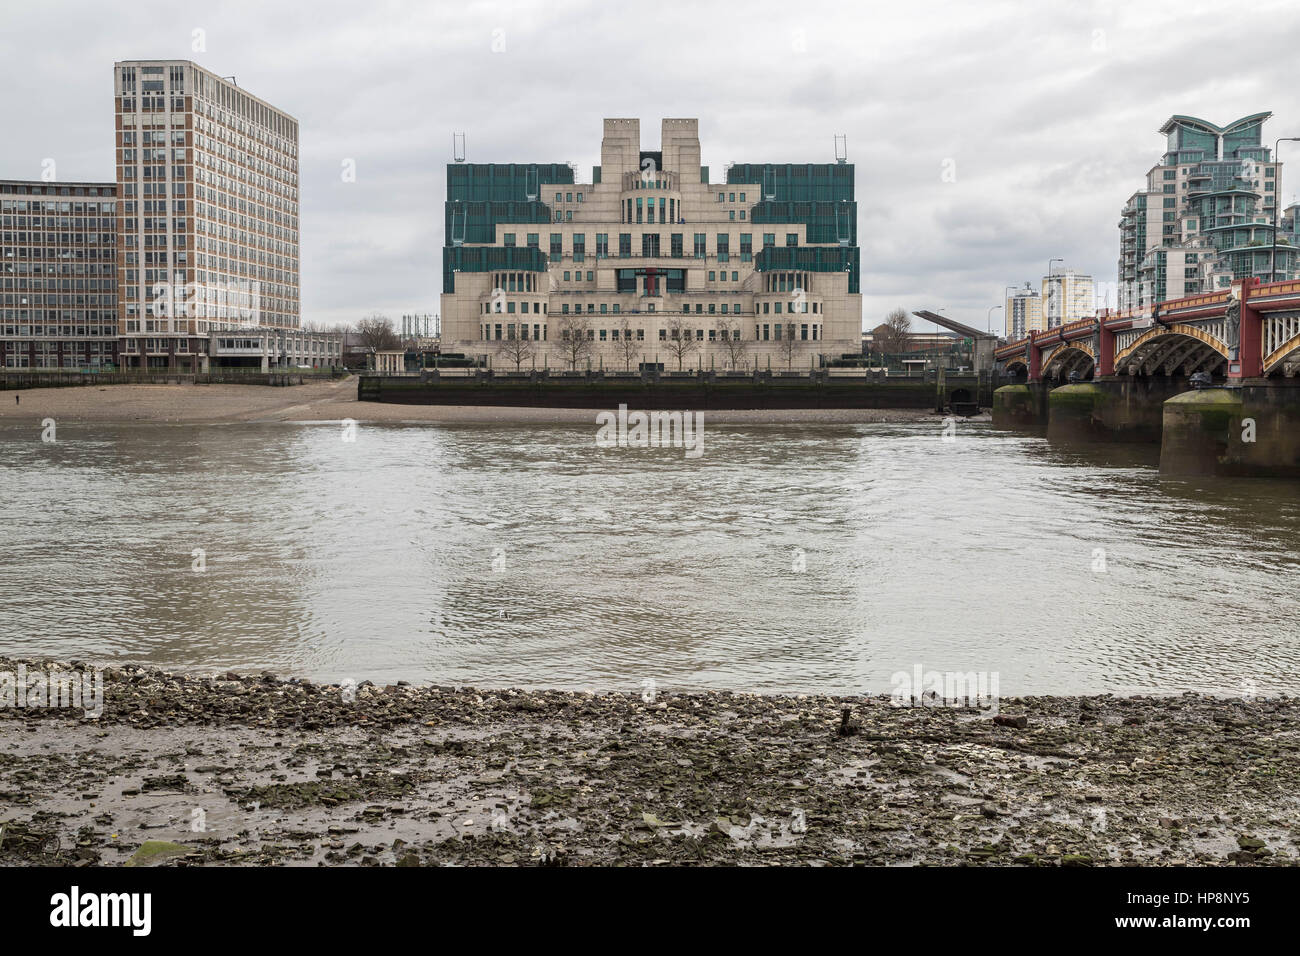 London, UK. 19th February, 2017. The SIS Building or MI6 Building at Vauxhall Cross. Headquarters of the British - Stock Image